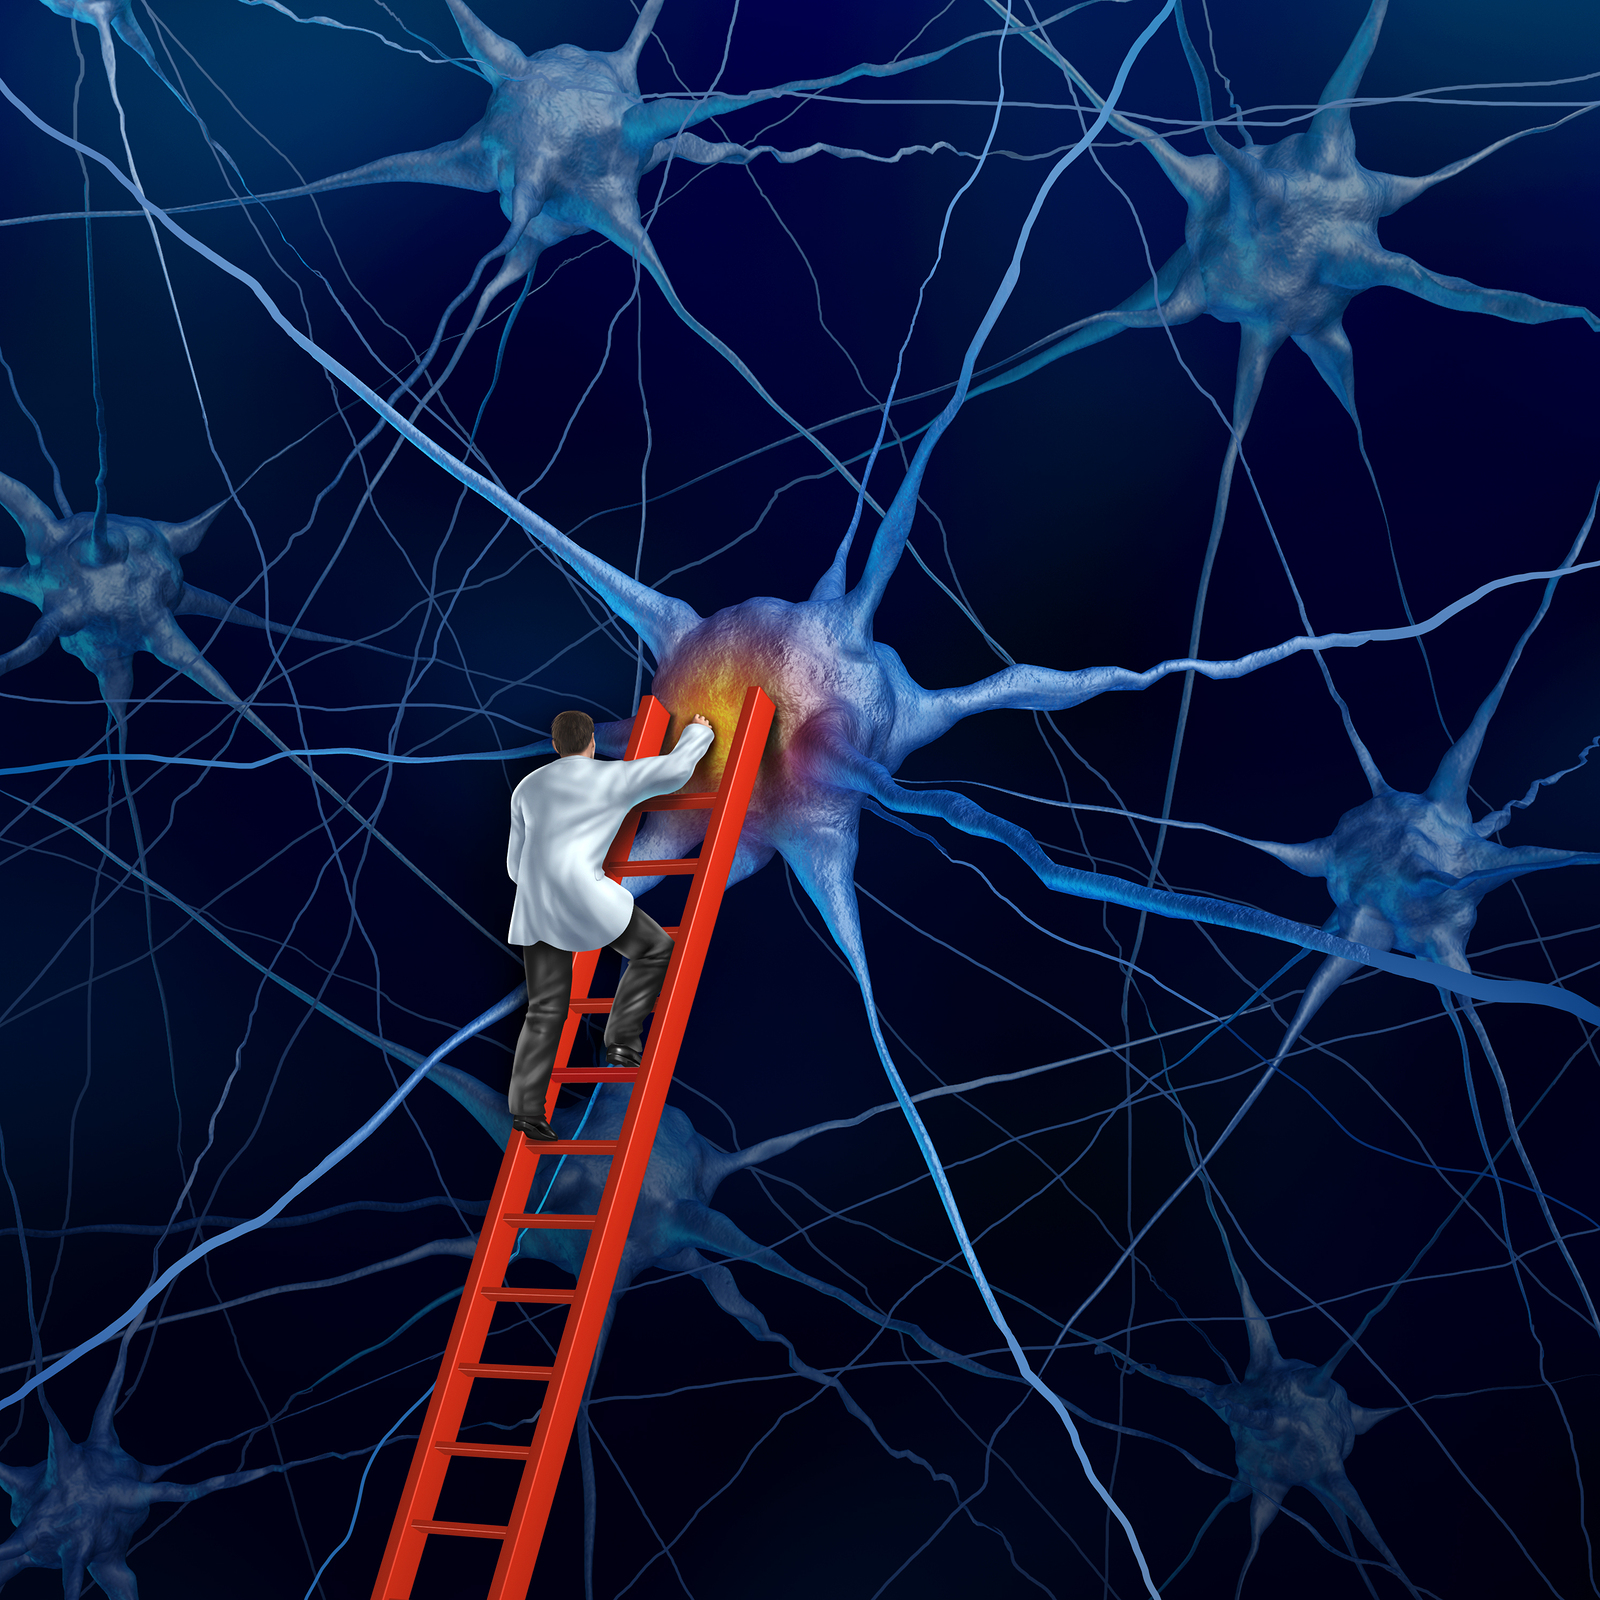 Brain doctor on a red ladder examining the neurons of a human head trying to heal memory loss or damaged cells due to dementia and other neurological diseases as a mental health metaphor for medical research hope.